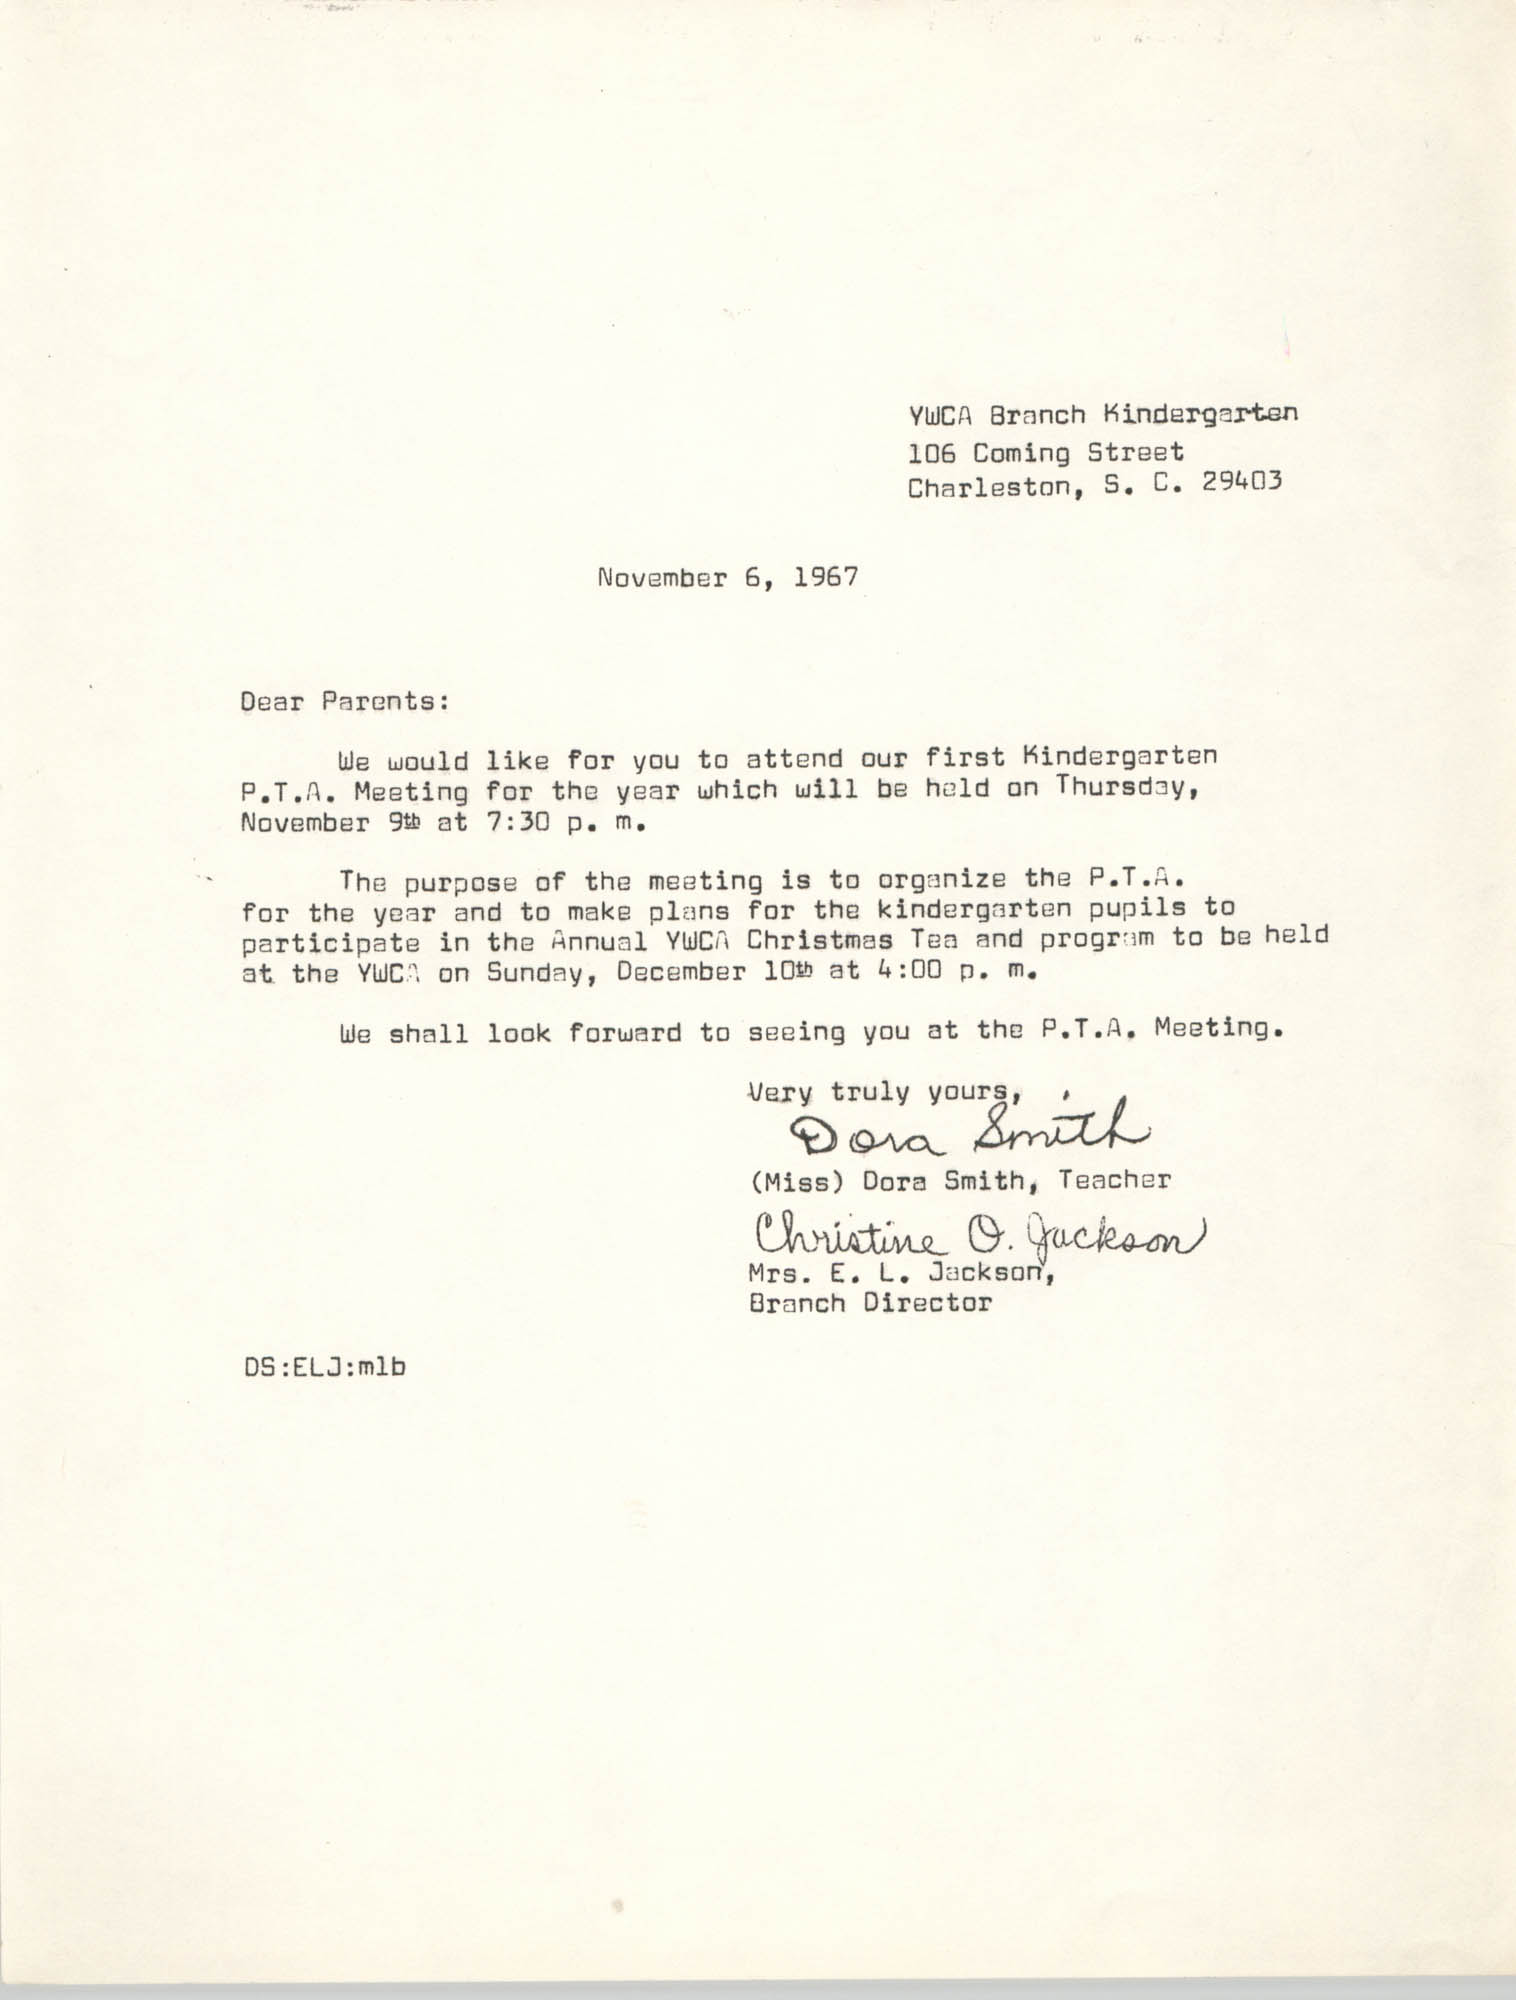 Letter from Dora Smith and Christine O. Jackson to Parents, November 6, 1967